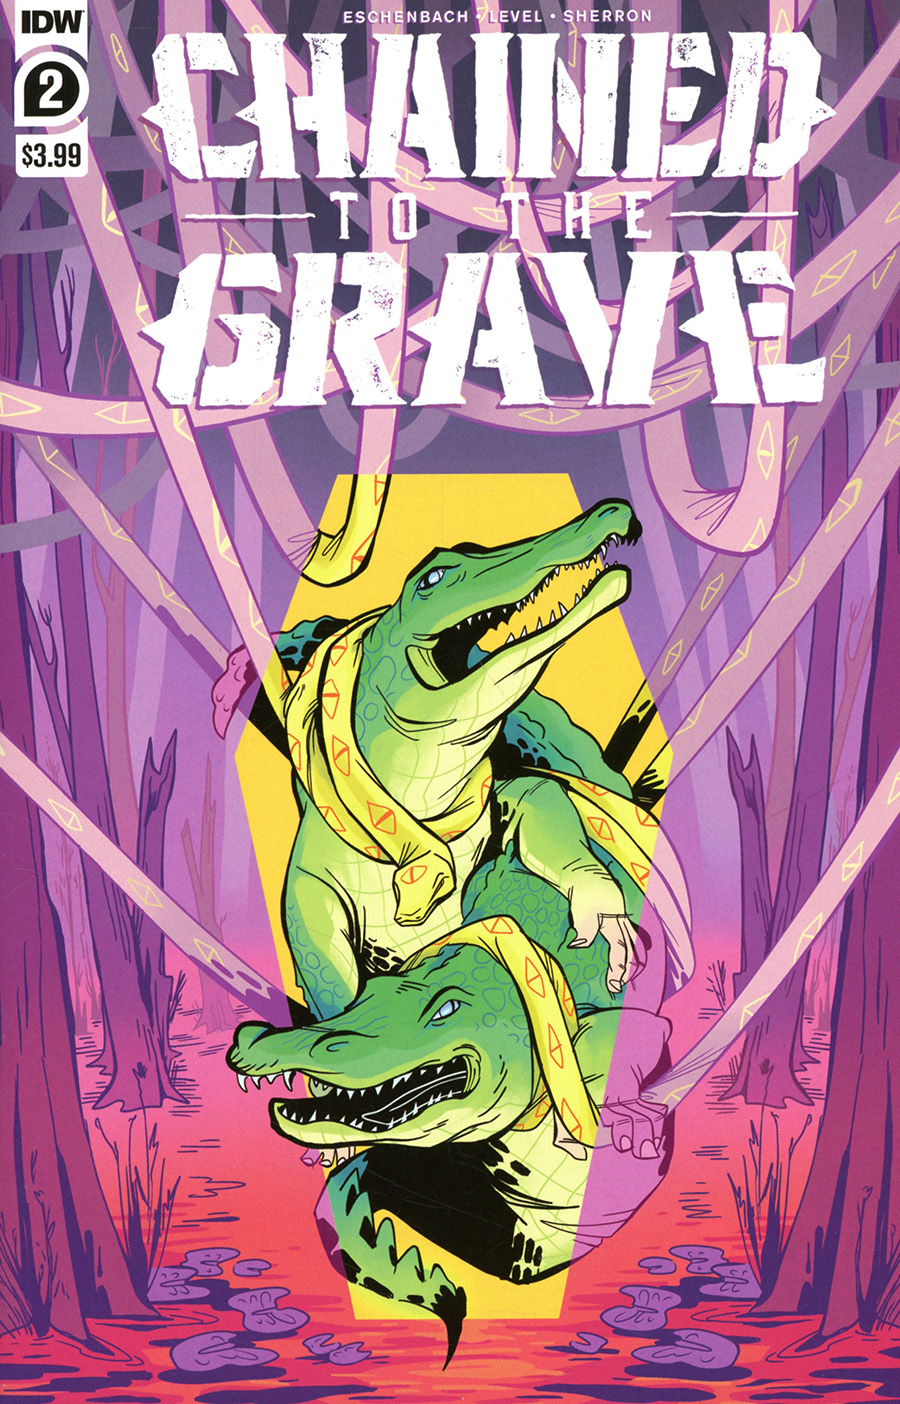 Chained To The Grave #2 Cover A Regular Kate Sherron Cover